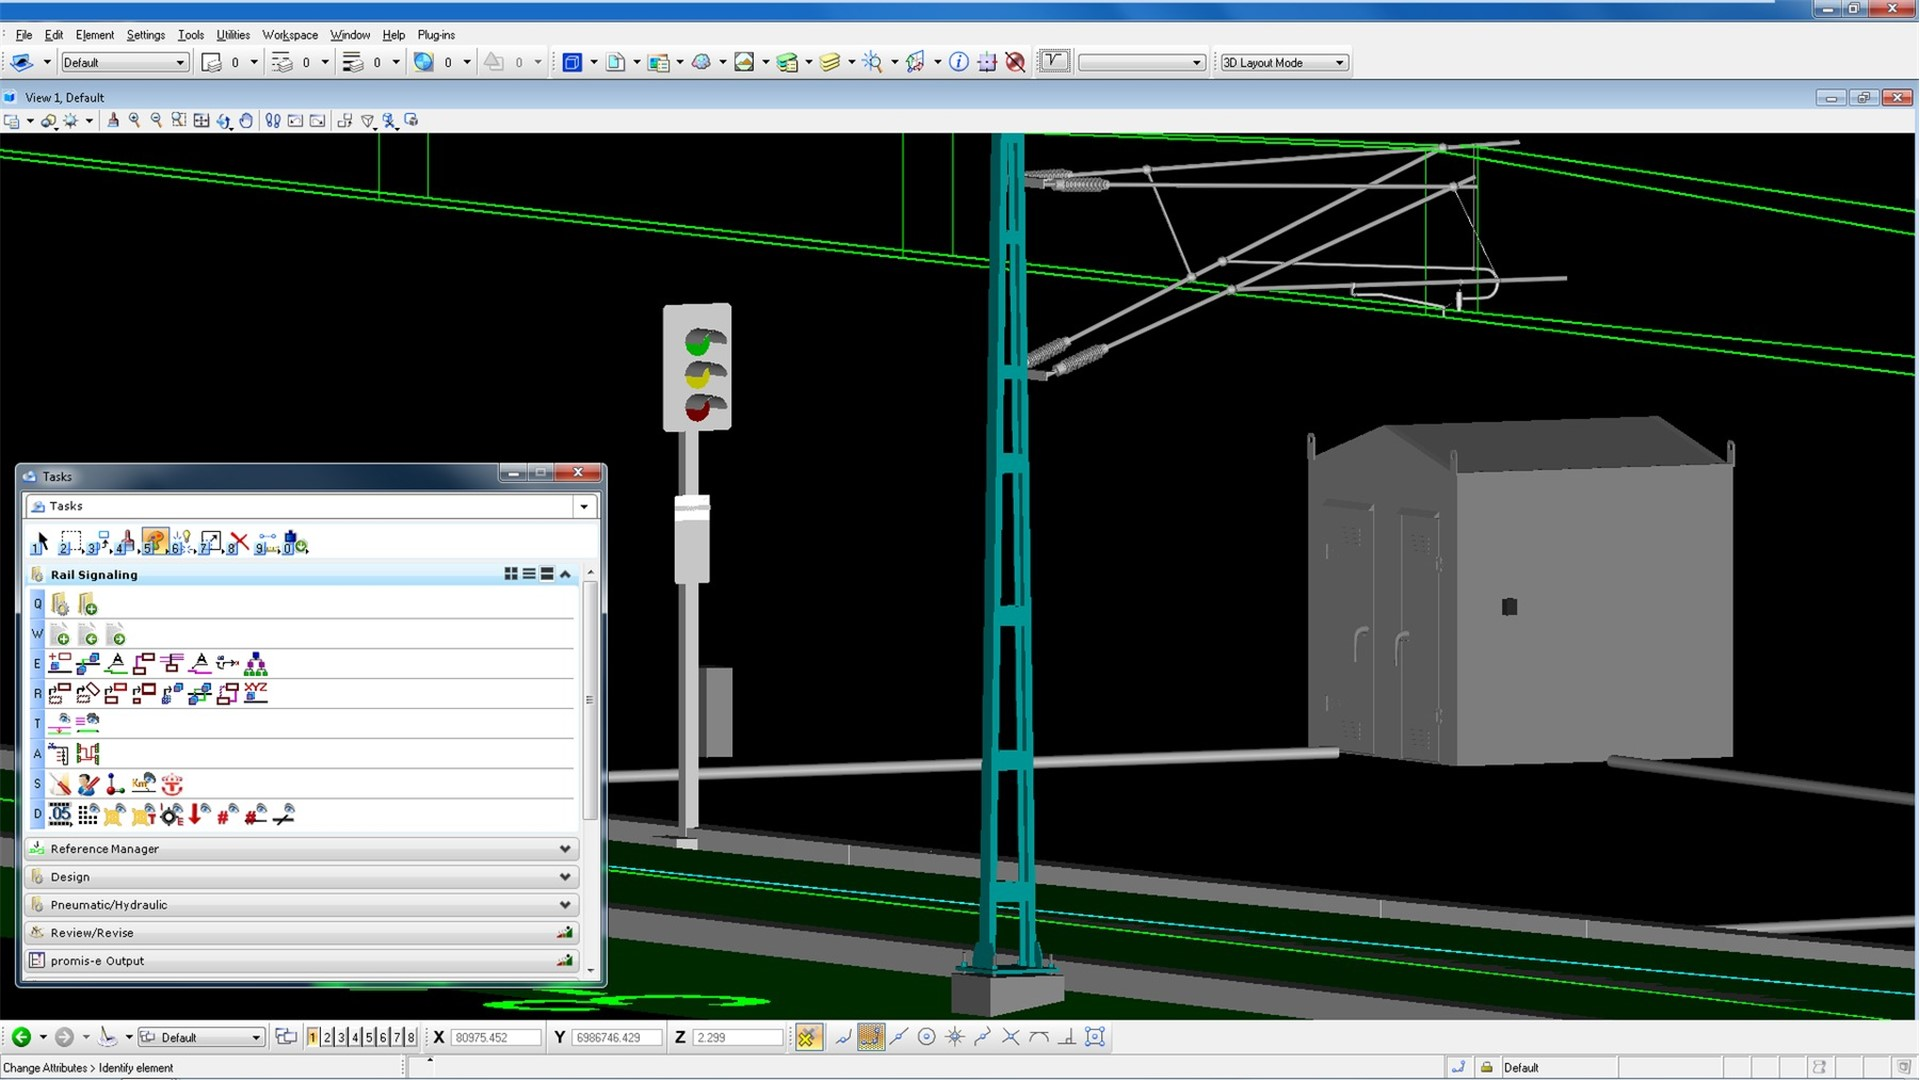 electrical and control system design software promis e